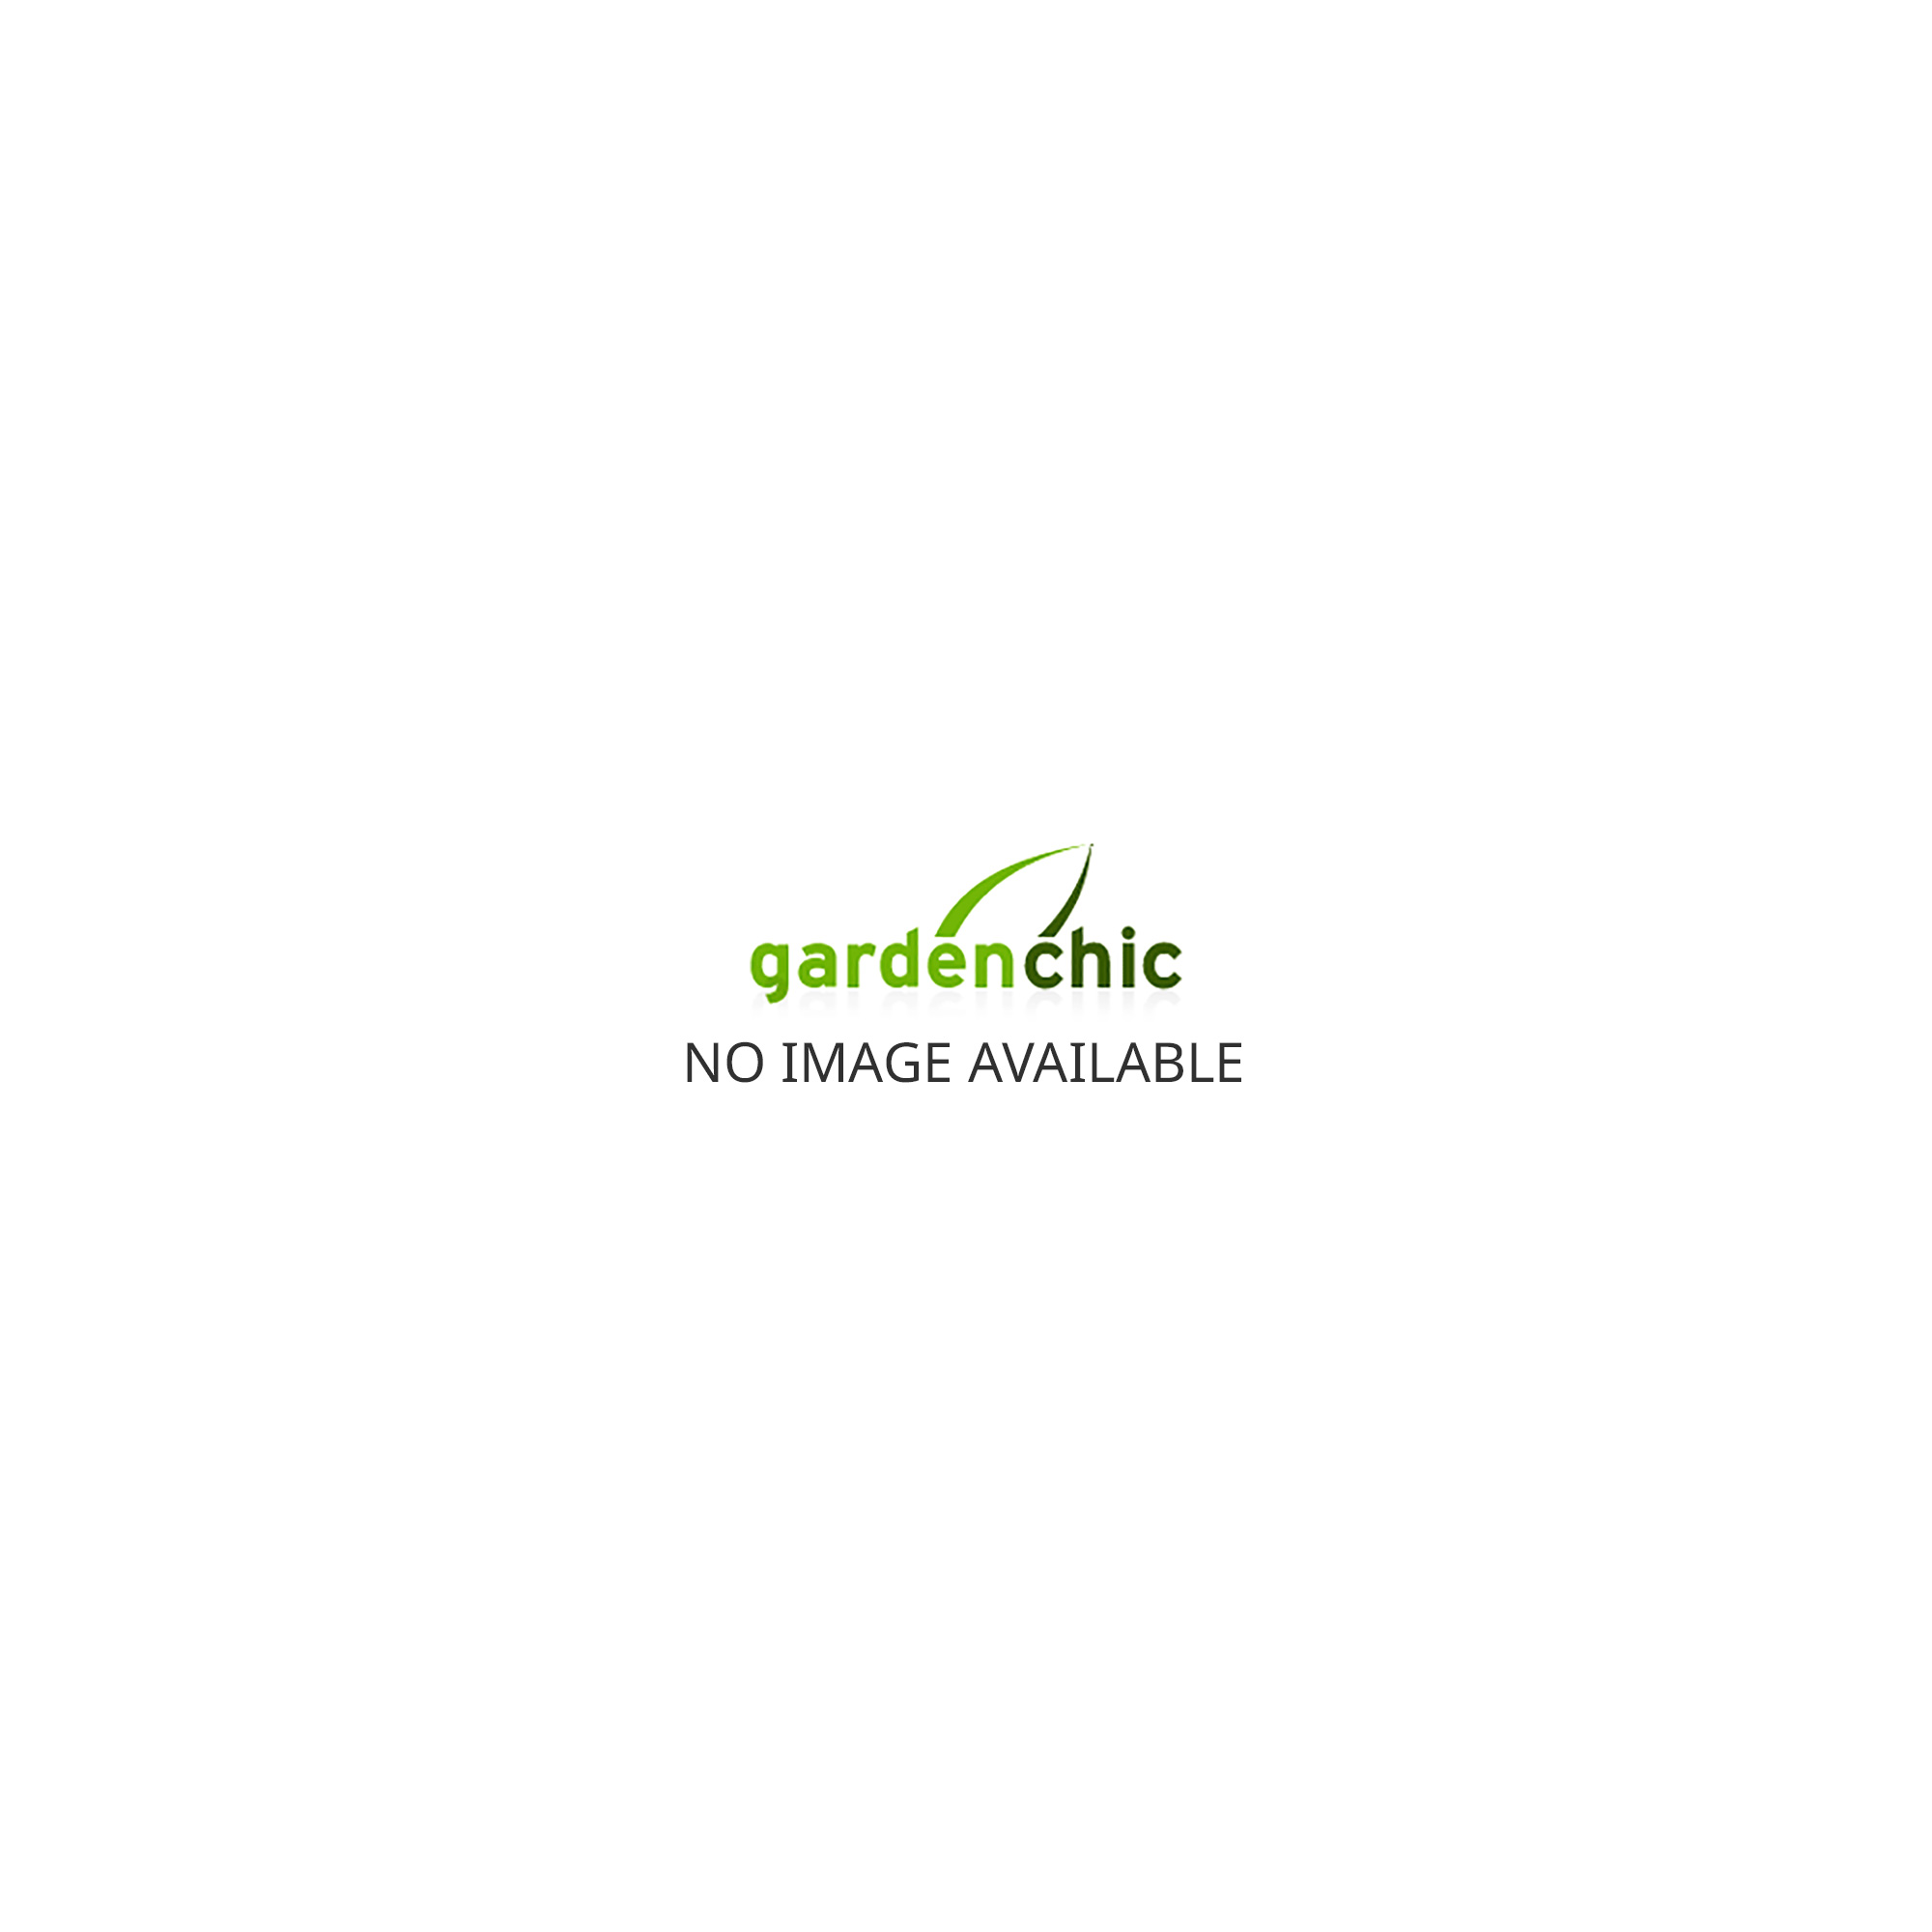 Phoenix 9900 Greenhouse - Green FREE Staging until APRIL 2018